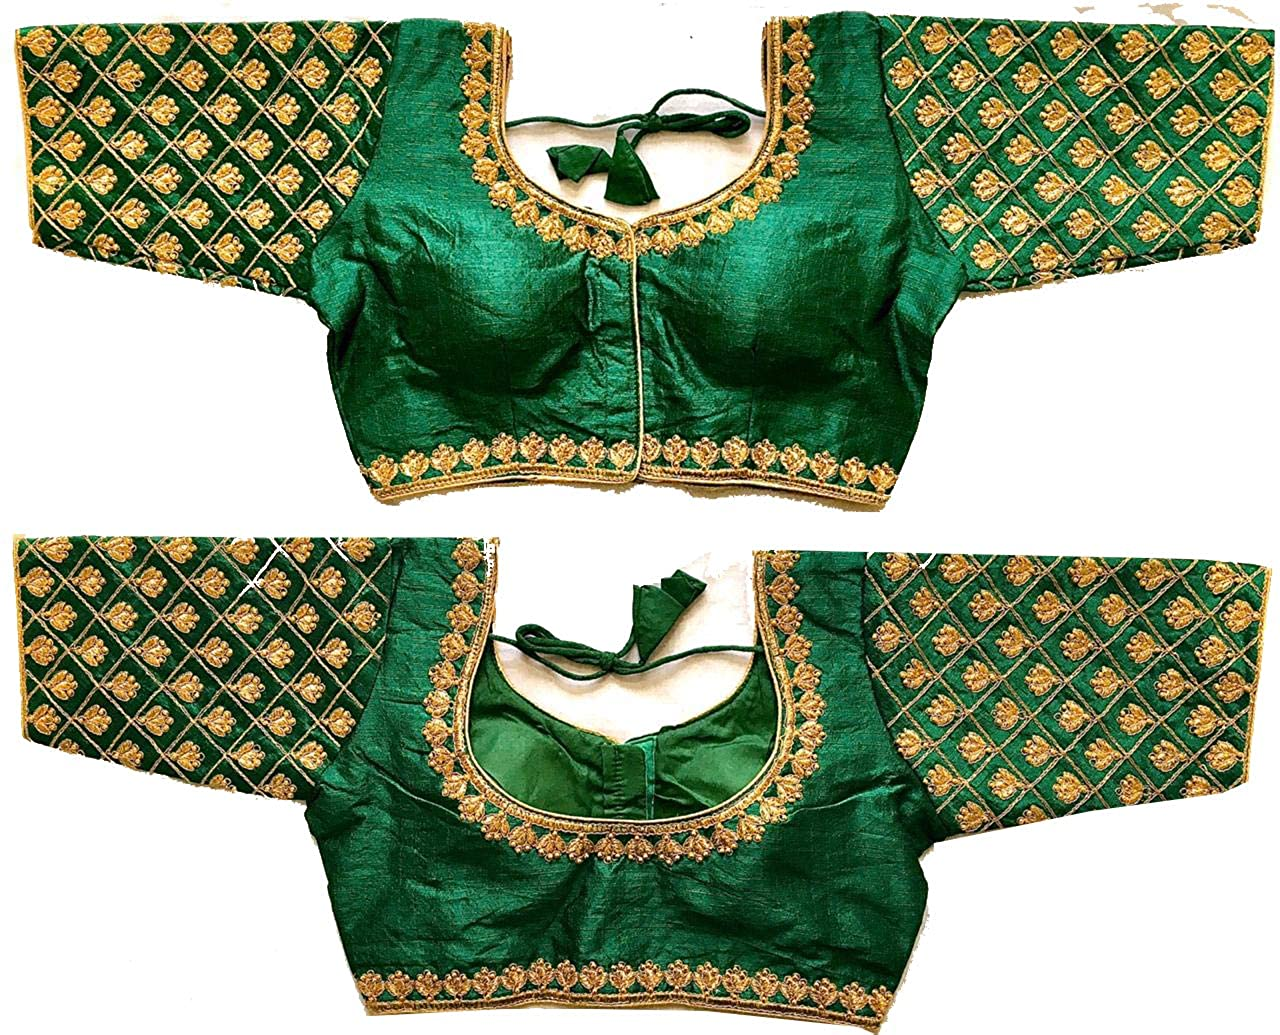 Buy Pujia Mills Women S Green Colour Heavy Hand Work Maggam Design Readymade Blouse For Saree And Lehenga Size 38 Margin At Amazon In,Hair Design For Wedding Simple